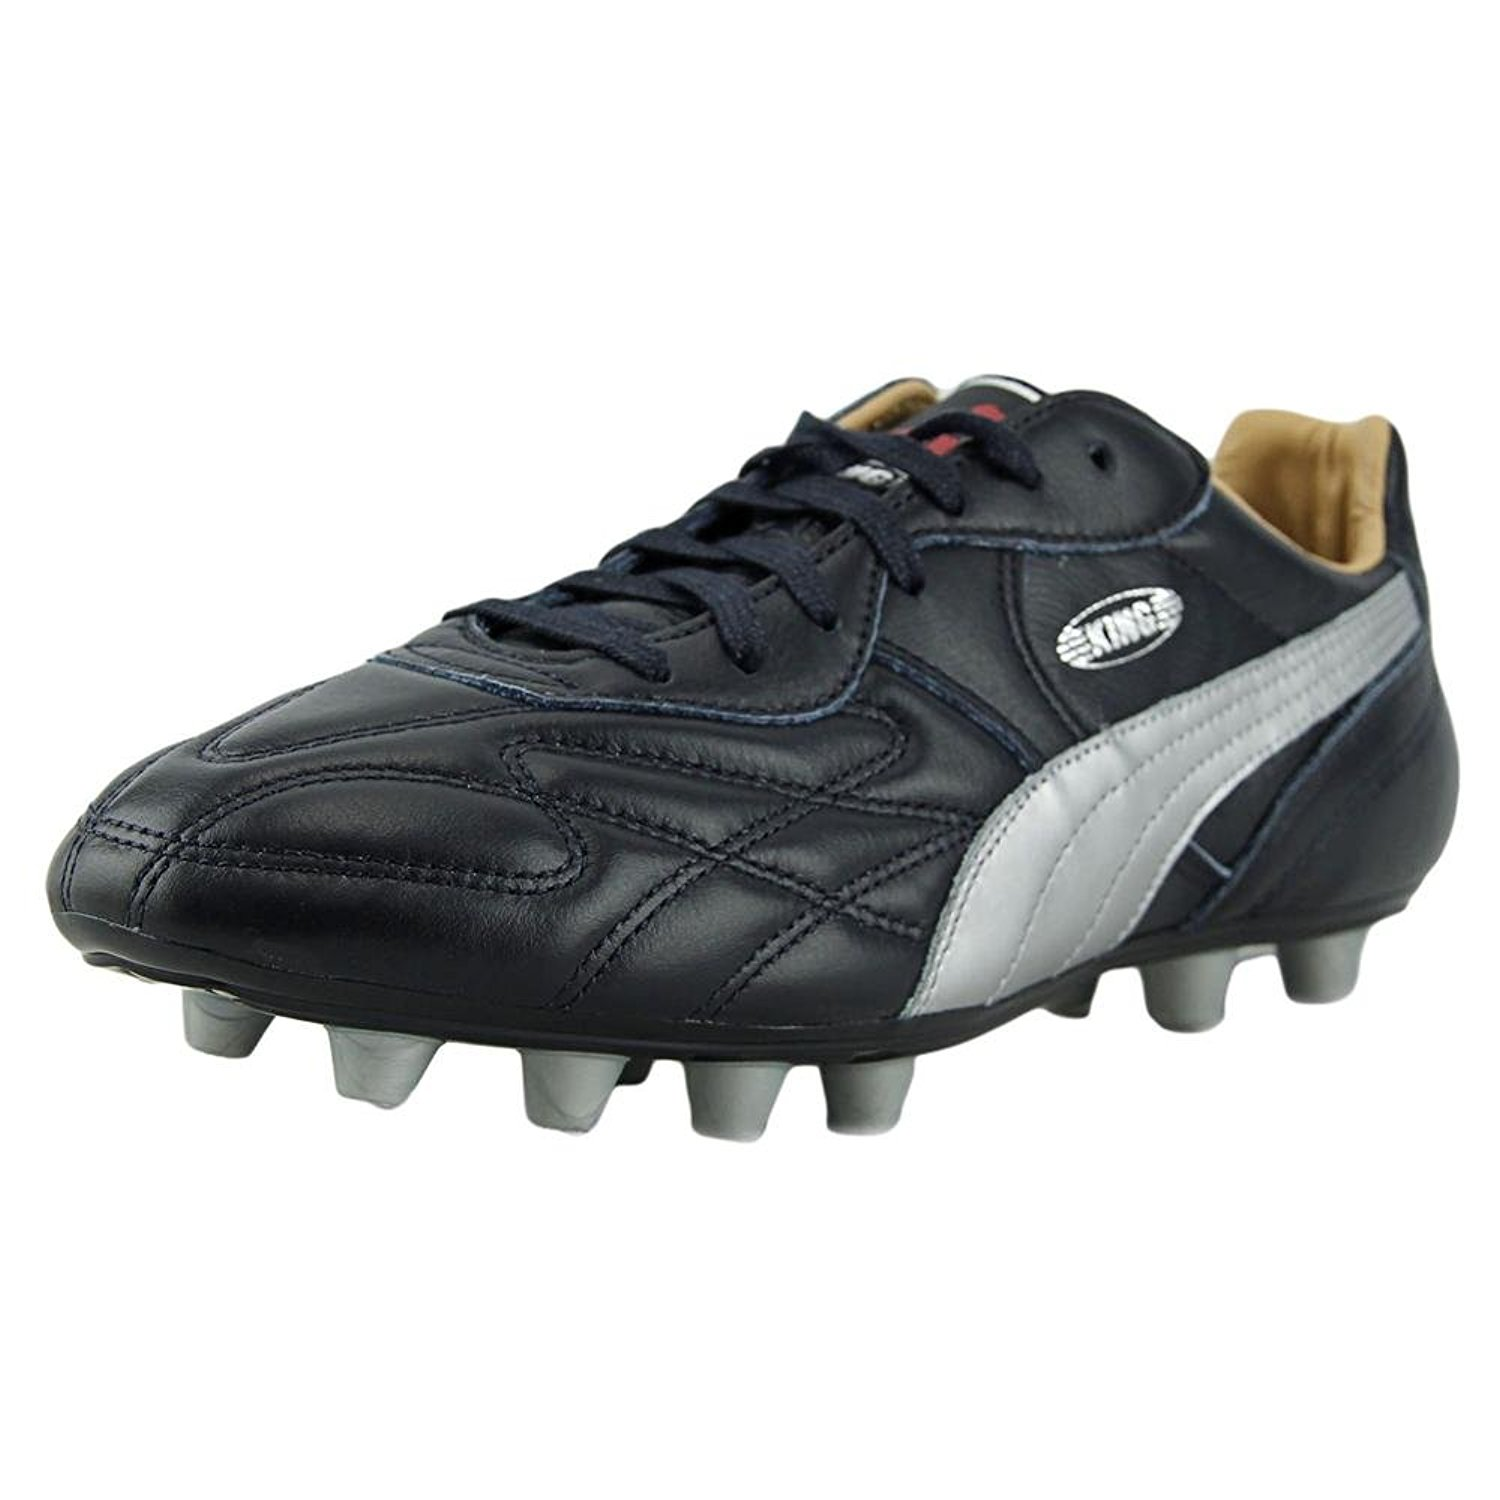 25717d44415d Buy Puma King Top City di FG Mens Firm Ground Soccer Cleats (9 D(M ...